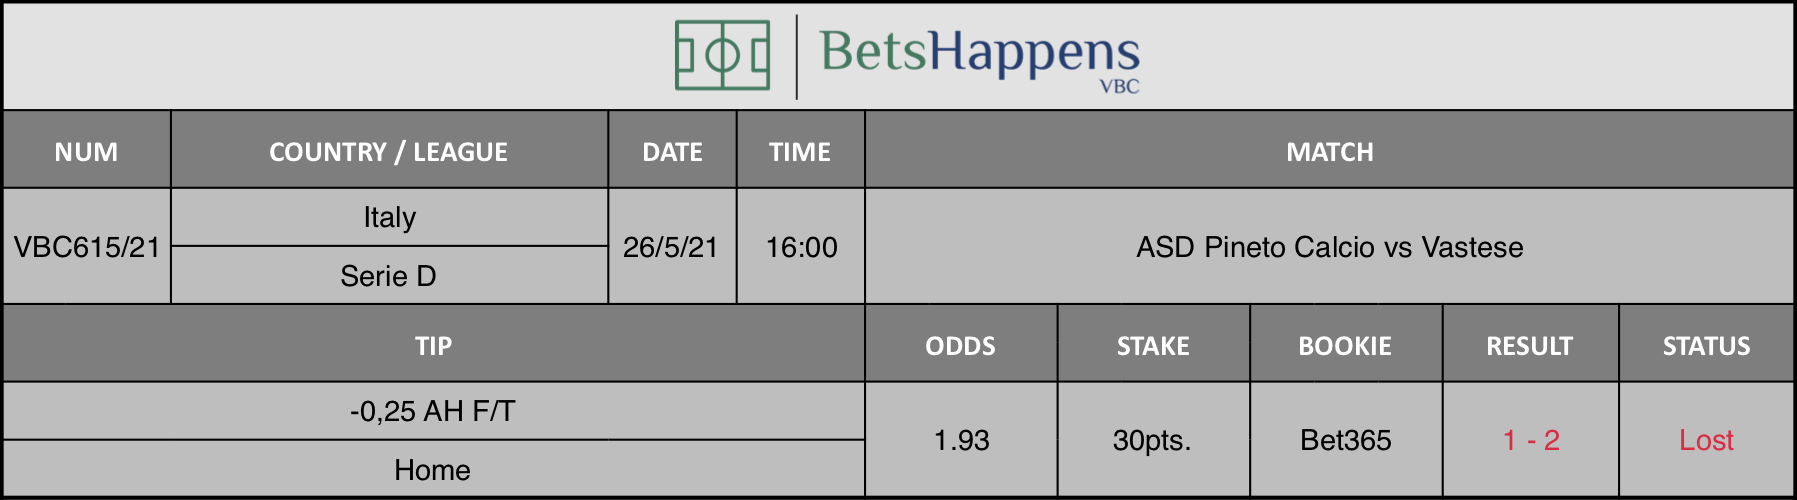 Results of our tip for the ASD Pineto Calcio vs Vastese match where -0,25 AH F/T Home is recommended.